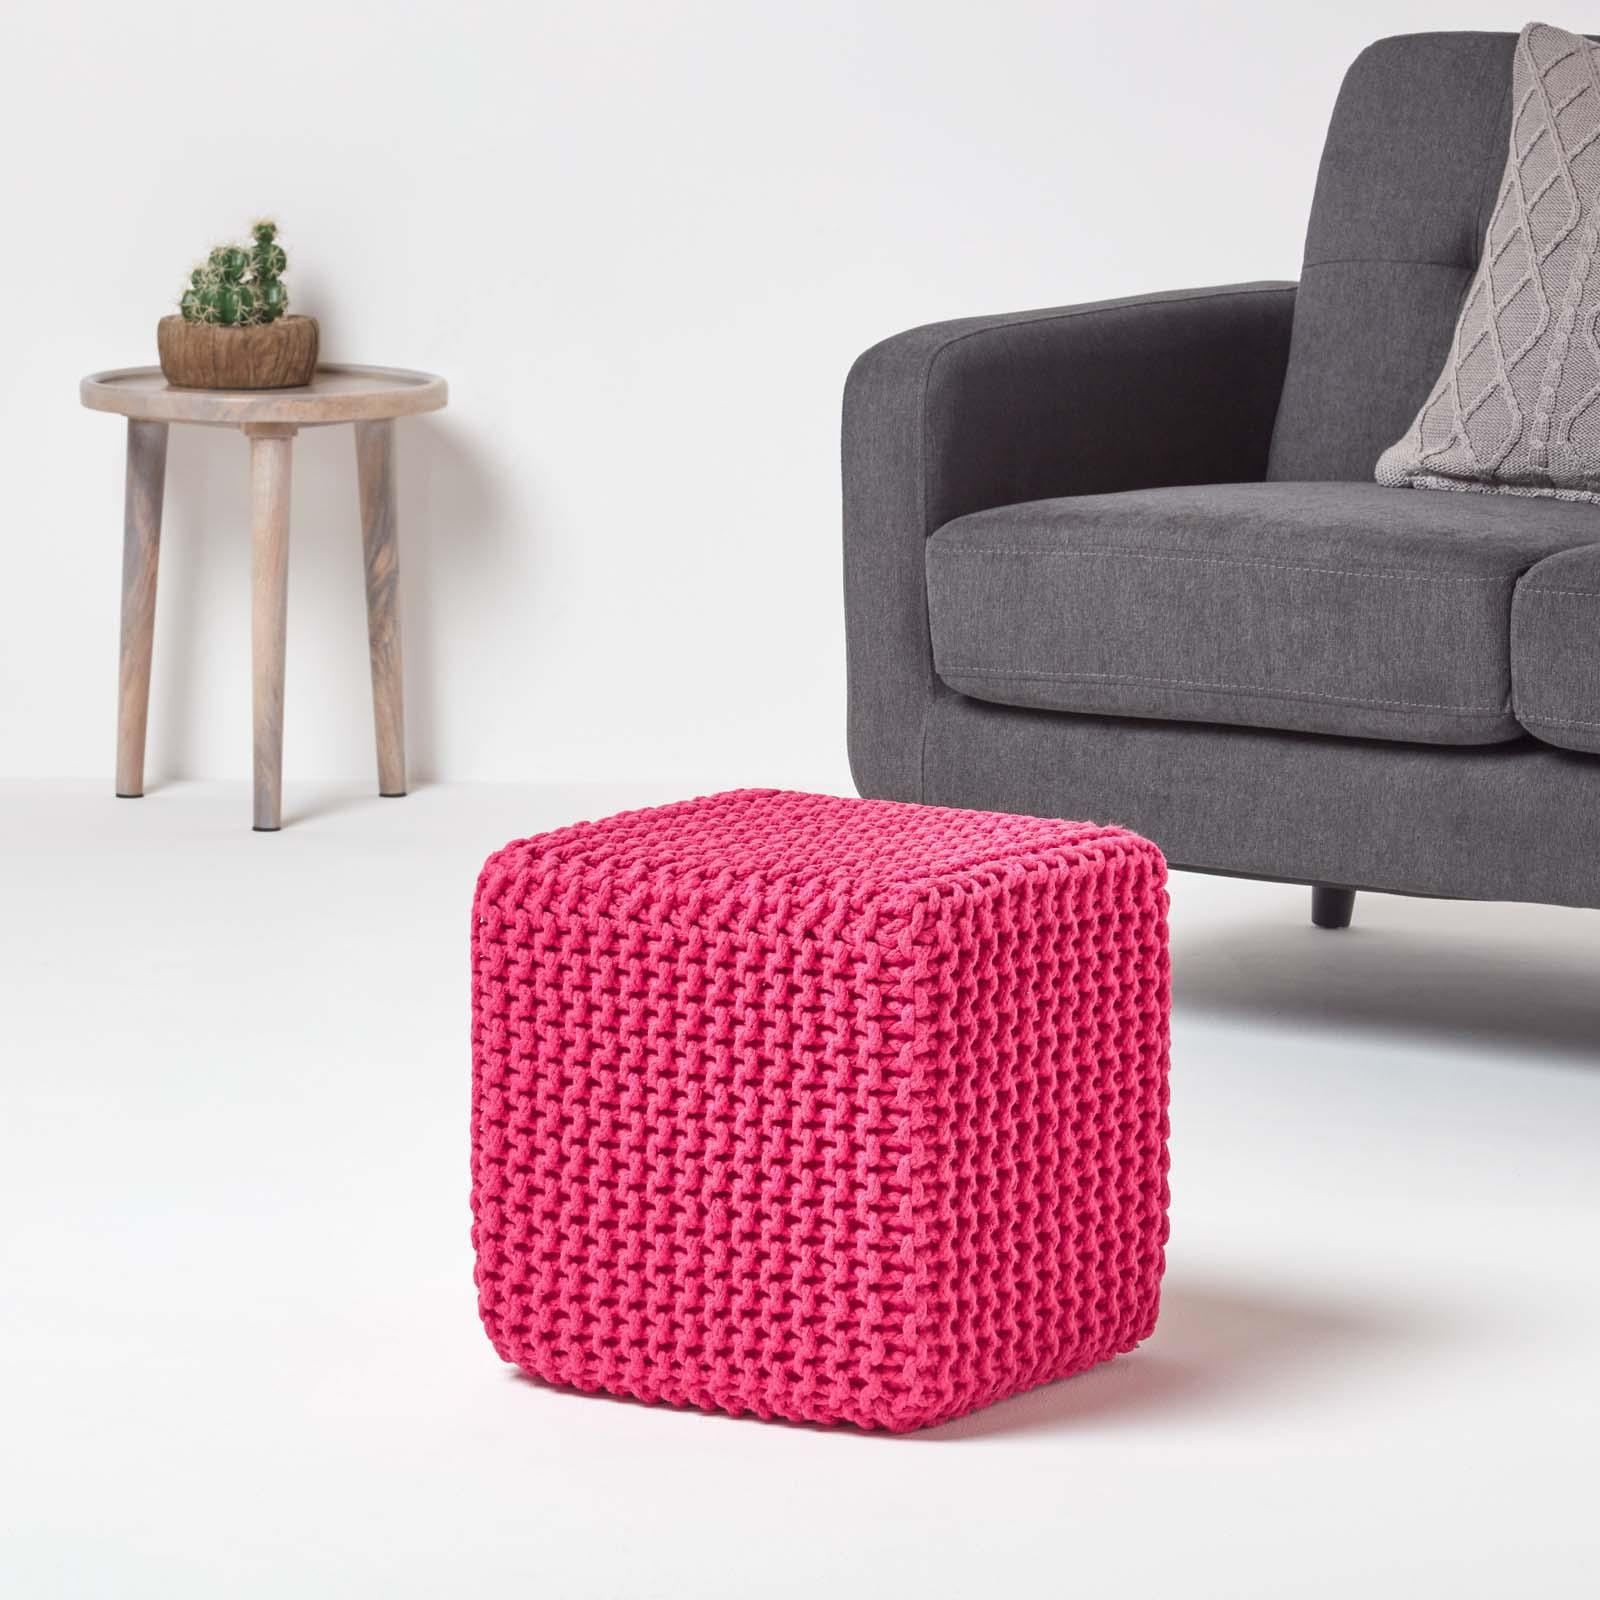 Hand-Knitted-100-Cotton-Pouffes-Round-Sphere-Or-Cube-Square-Chunky-Footstools thumbnail 68